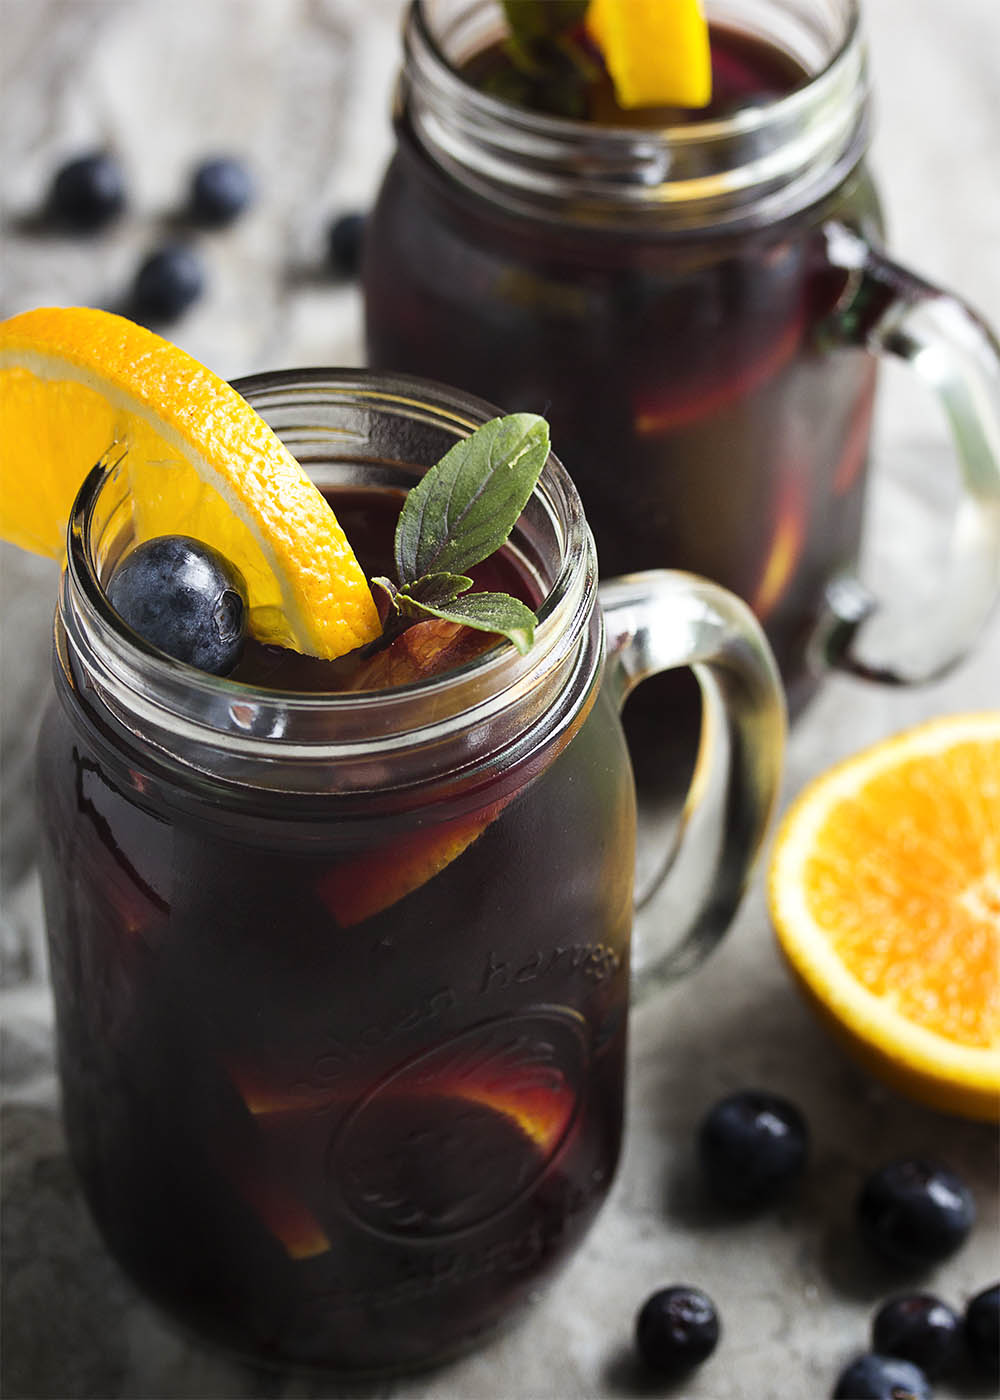 This easy orange and blueberry sangria is a great way to enjoy red wine on a hot day! It's not too sweet and bursting with summer fruit. Perfect for sipping outdoors. | justalittlebitofbacon.com